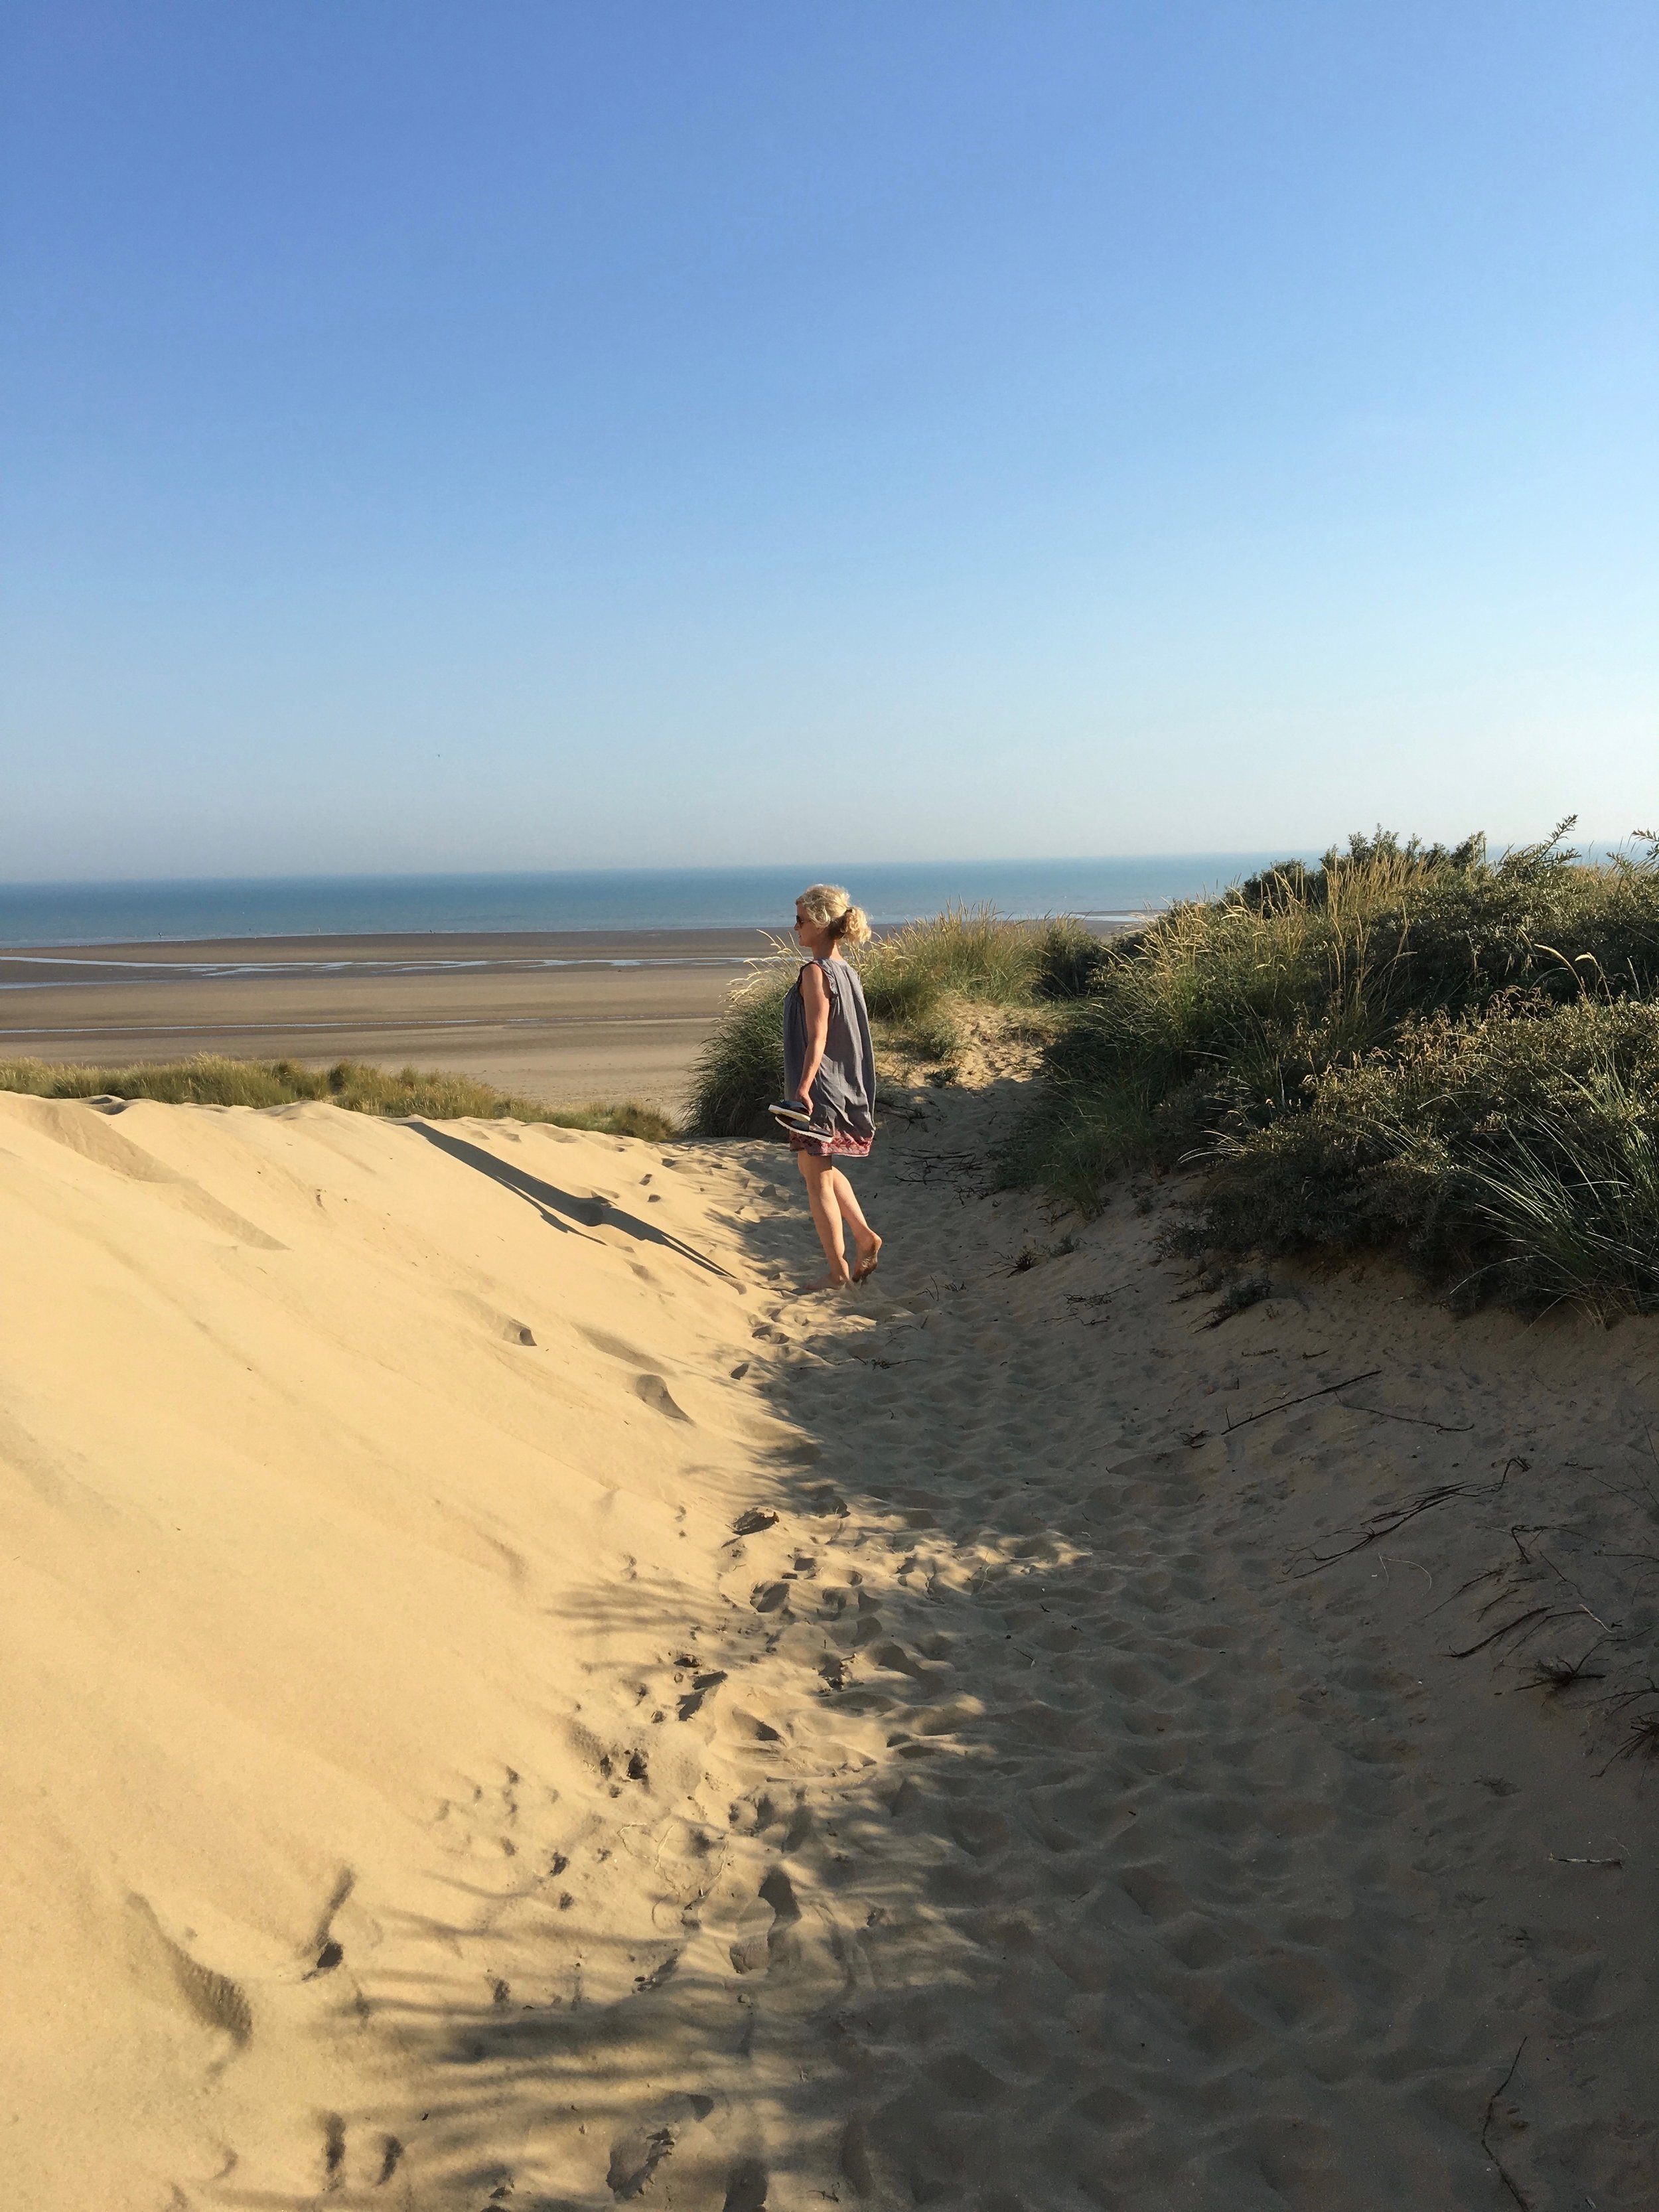 Camber Sands is a short walk over the dunes